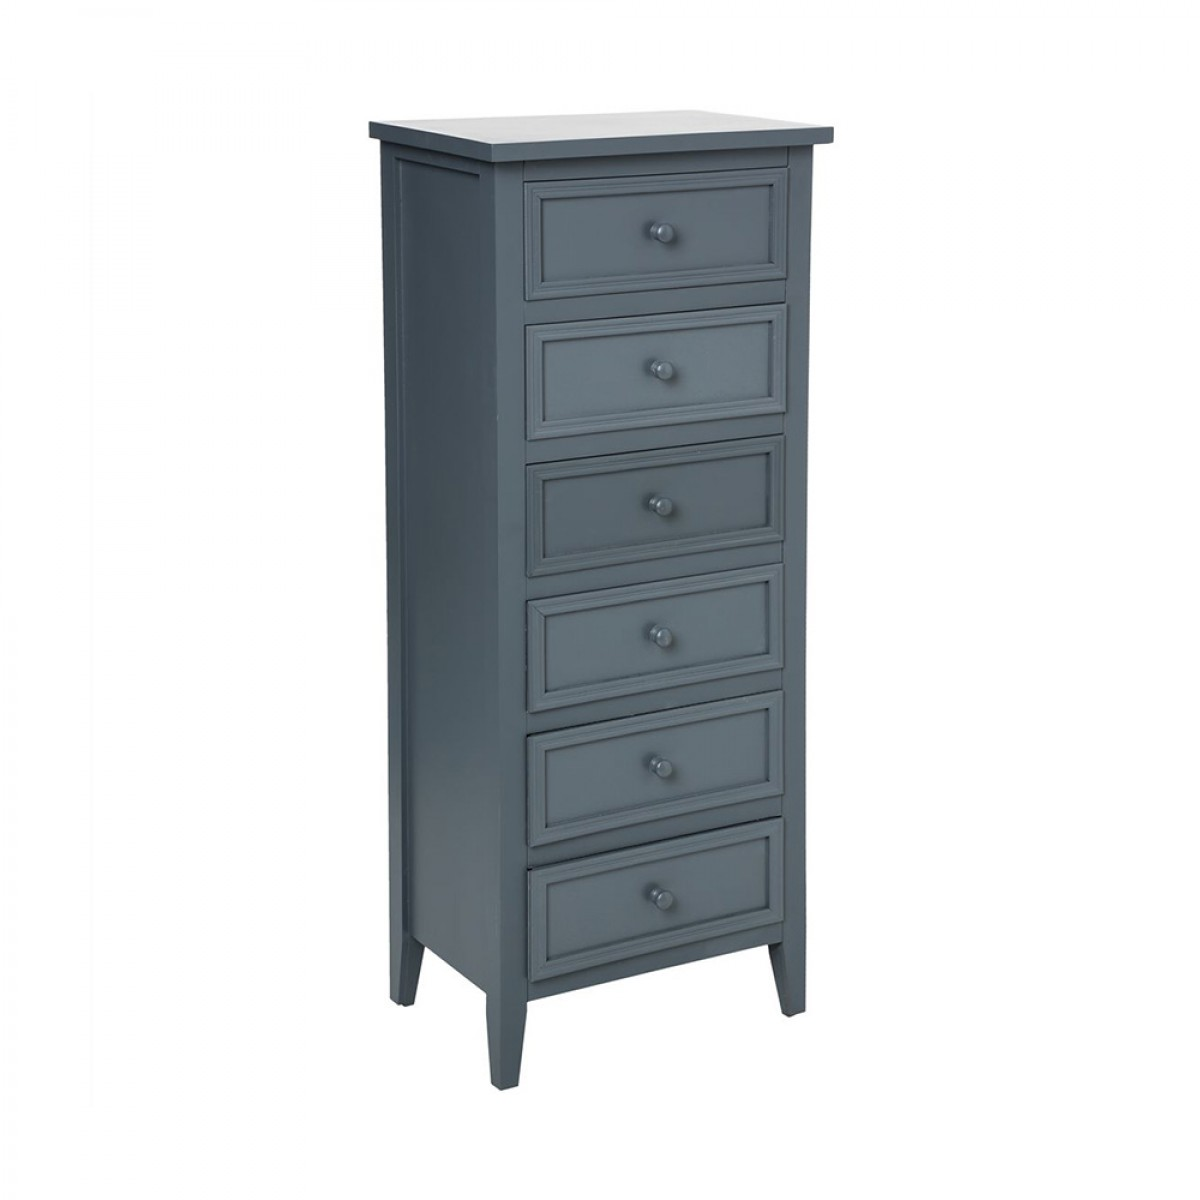 chiffonnier 6 tiroirs gris charme les douces nuits de ma linge de maison. Black Bedroom Furniture Sets. Home Design Ideas